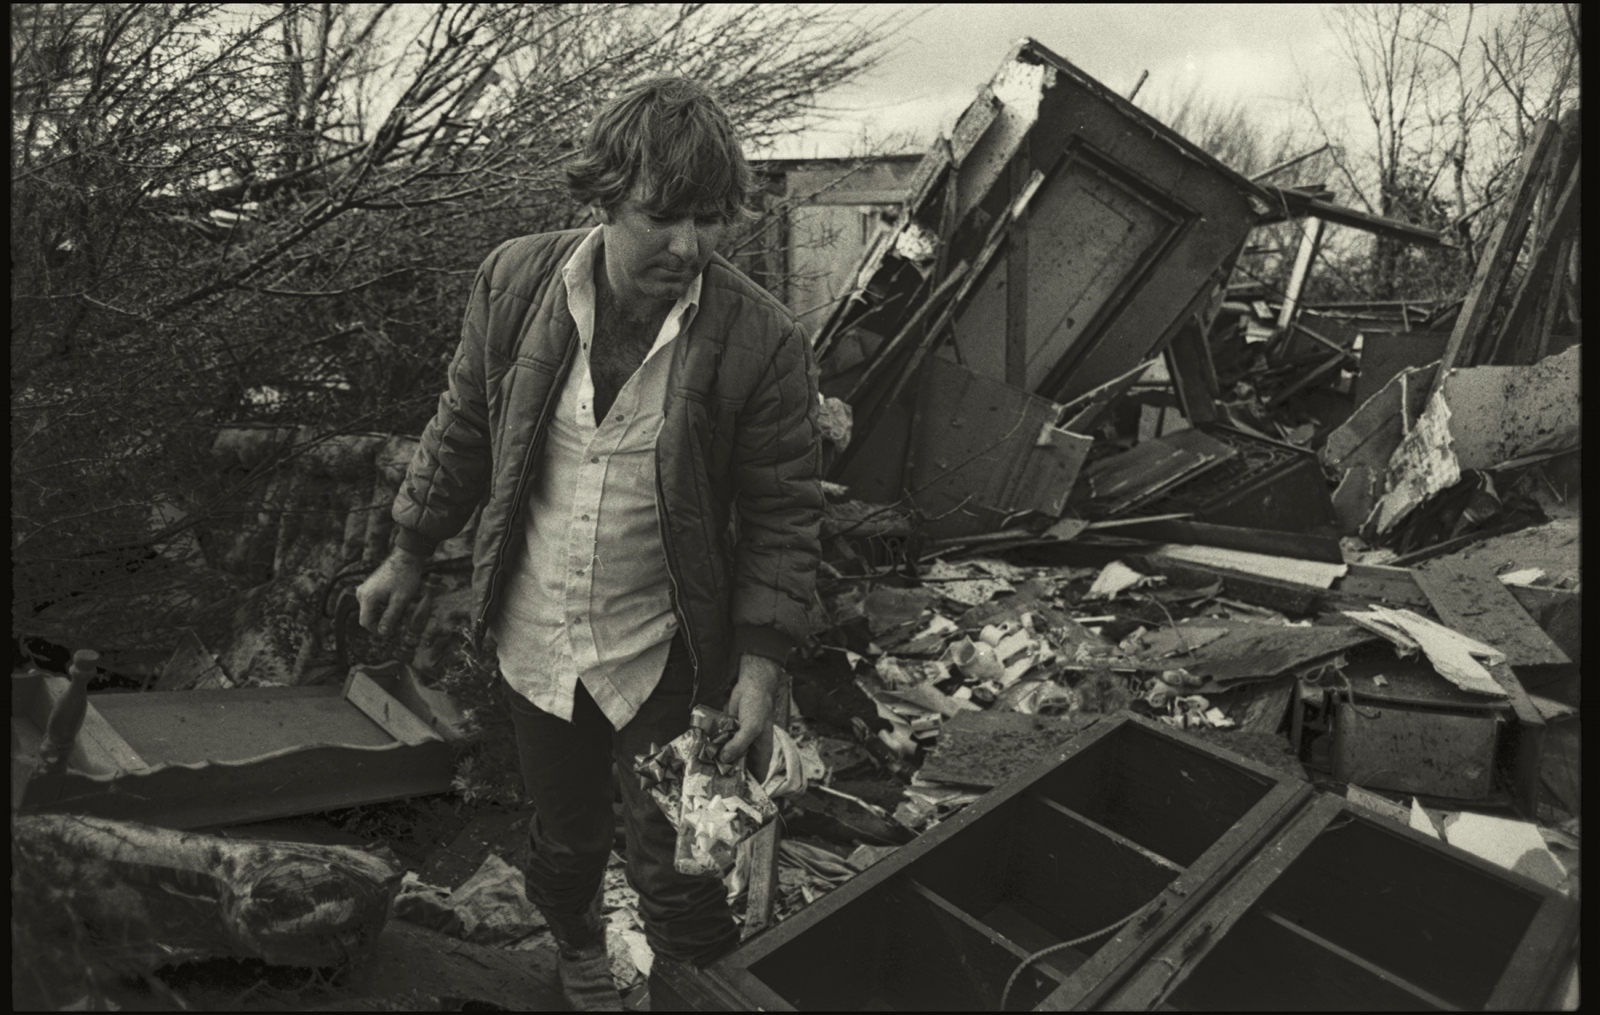 Tornado aftermath, Balch Springs, Texas, USA. 1986.